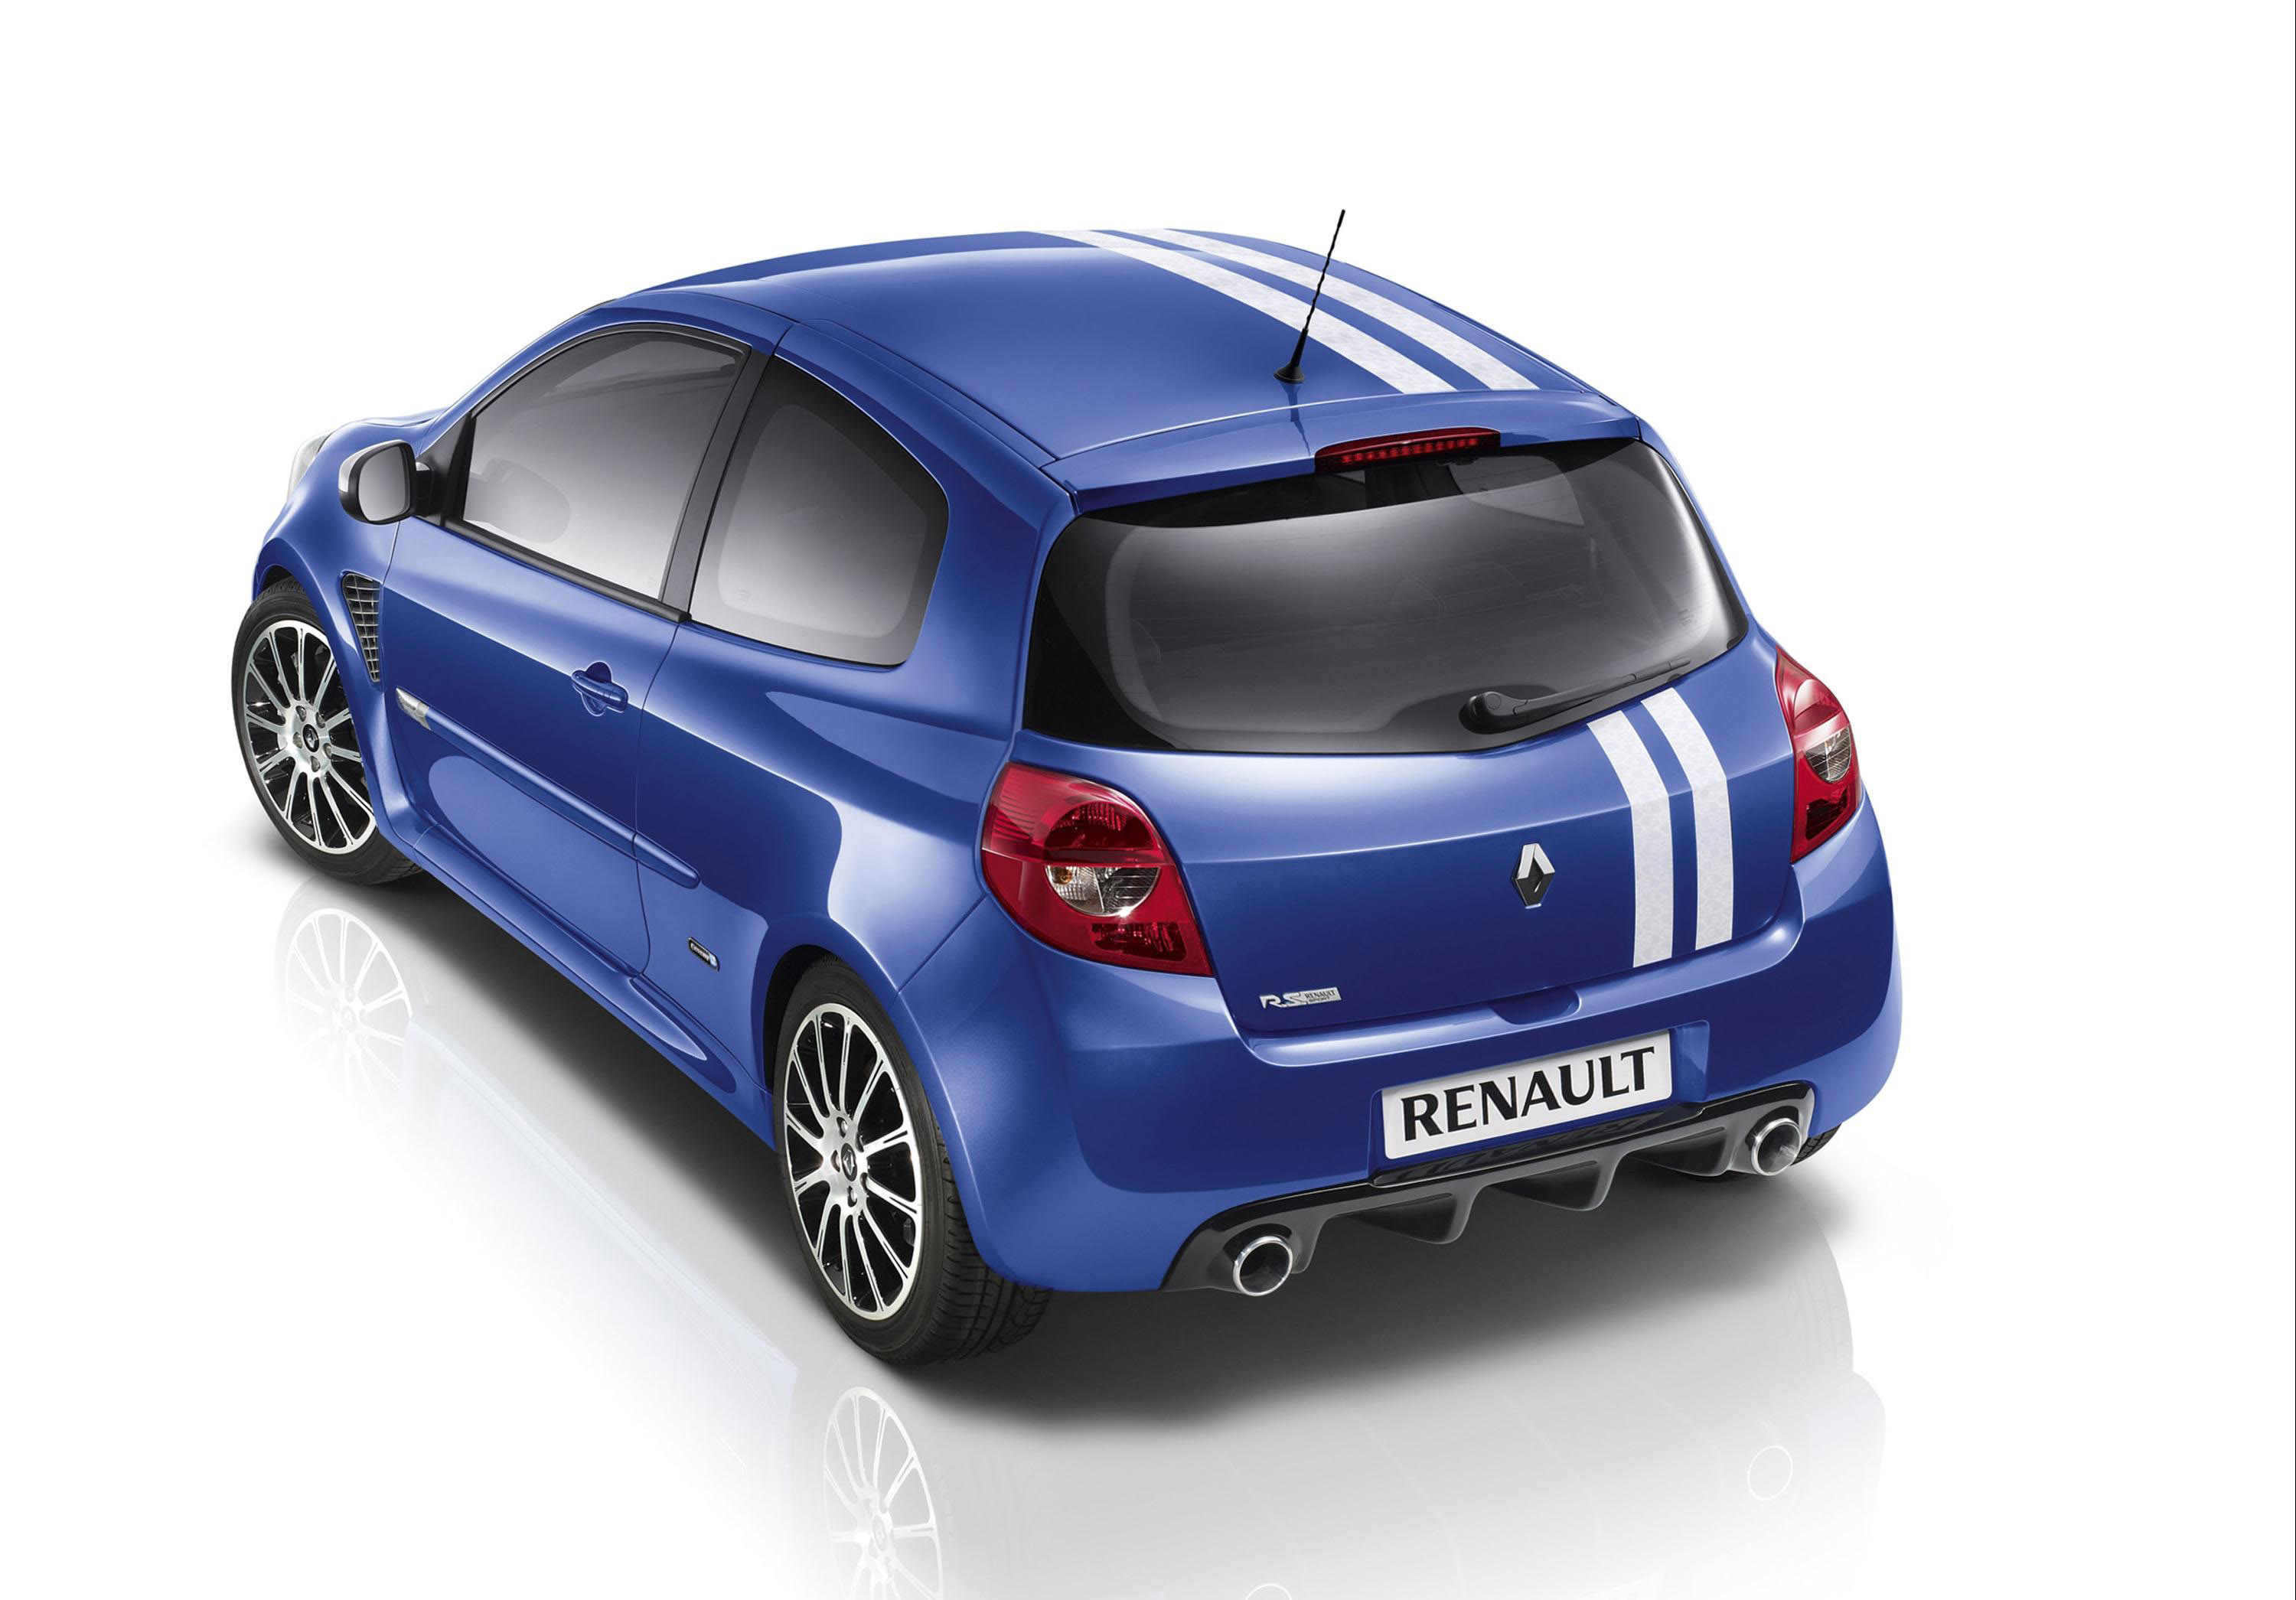 renault reveals gordini styled clio. Black Bedroom Furniture Sets. Home Design Ideas